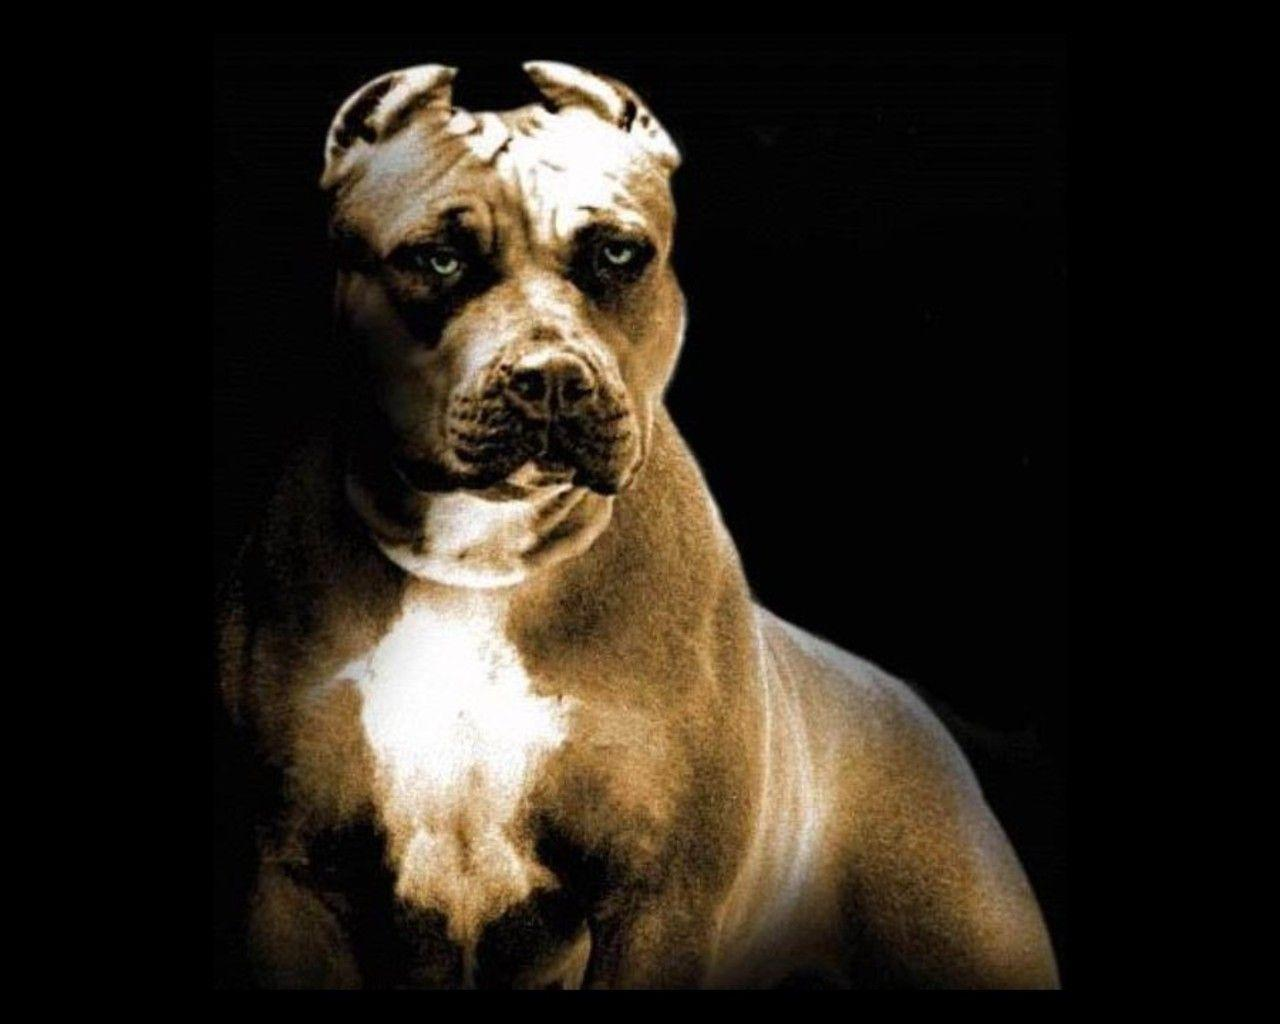 Pitbull Dog New Wallpapers | Pitbull Dog Pictures Free Download .